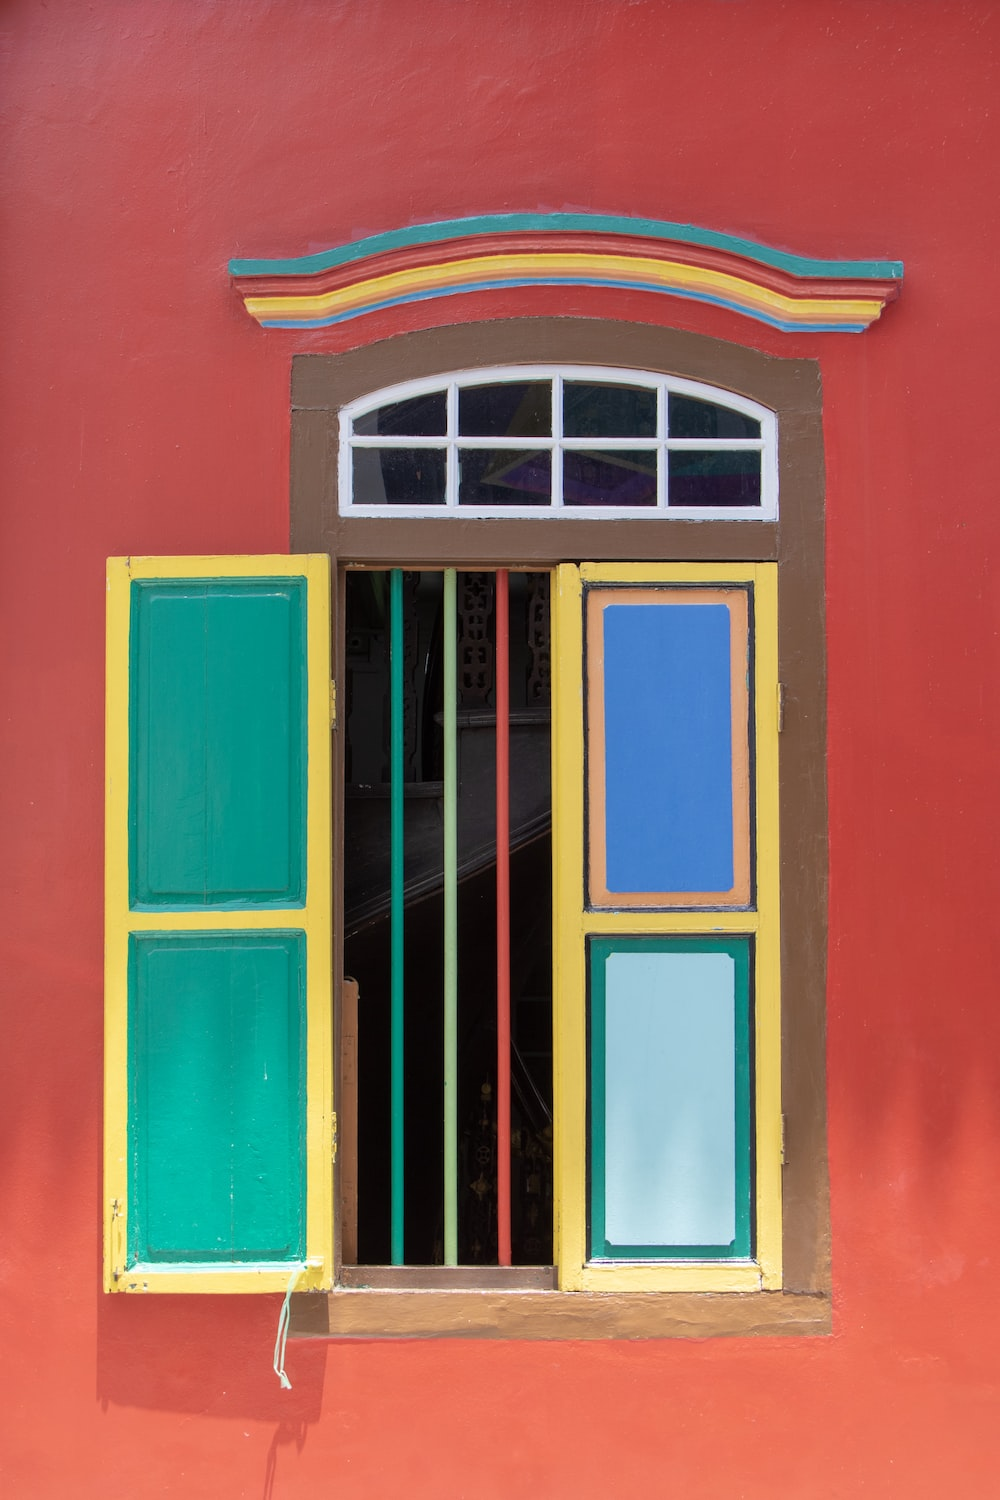 colorful window on red wall